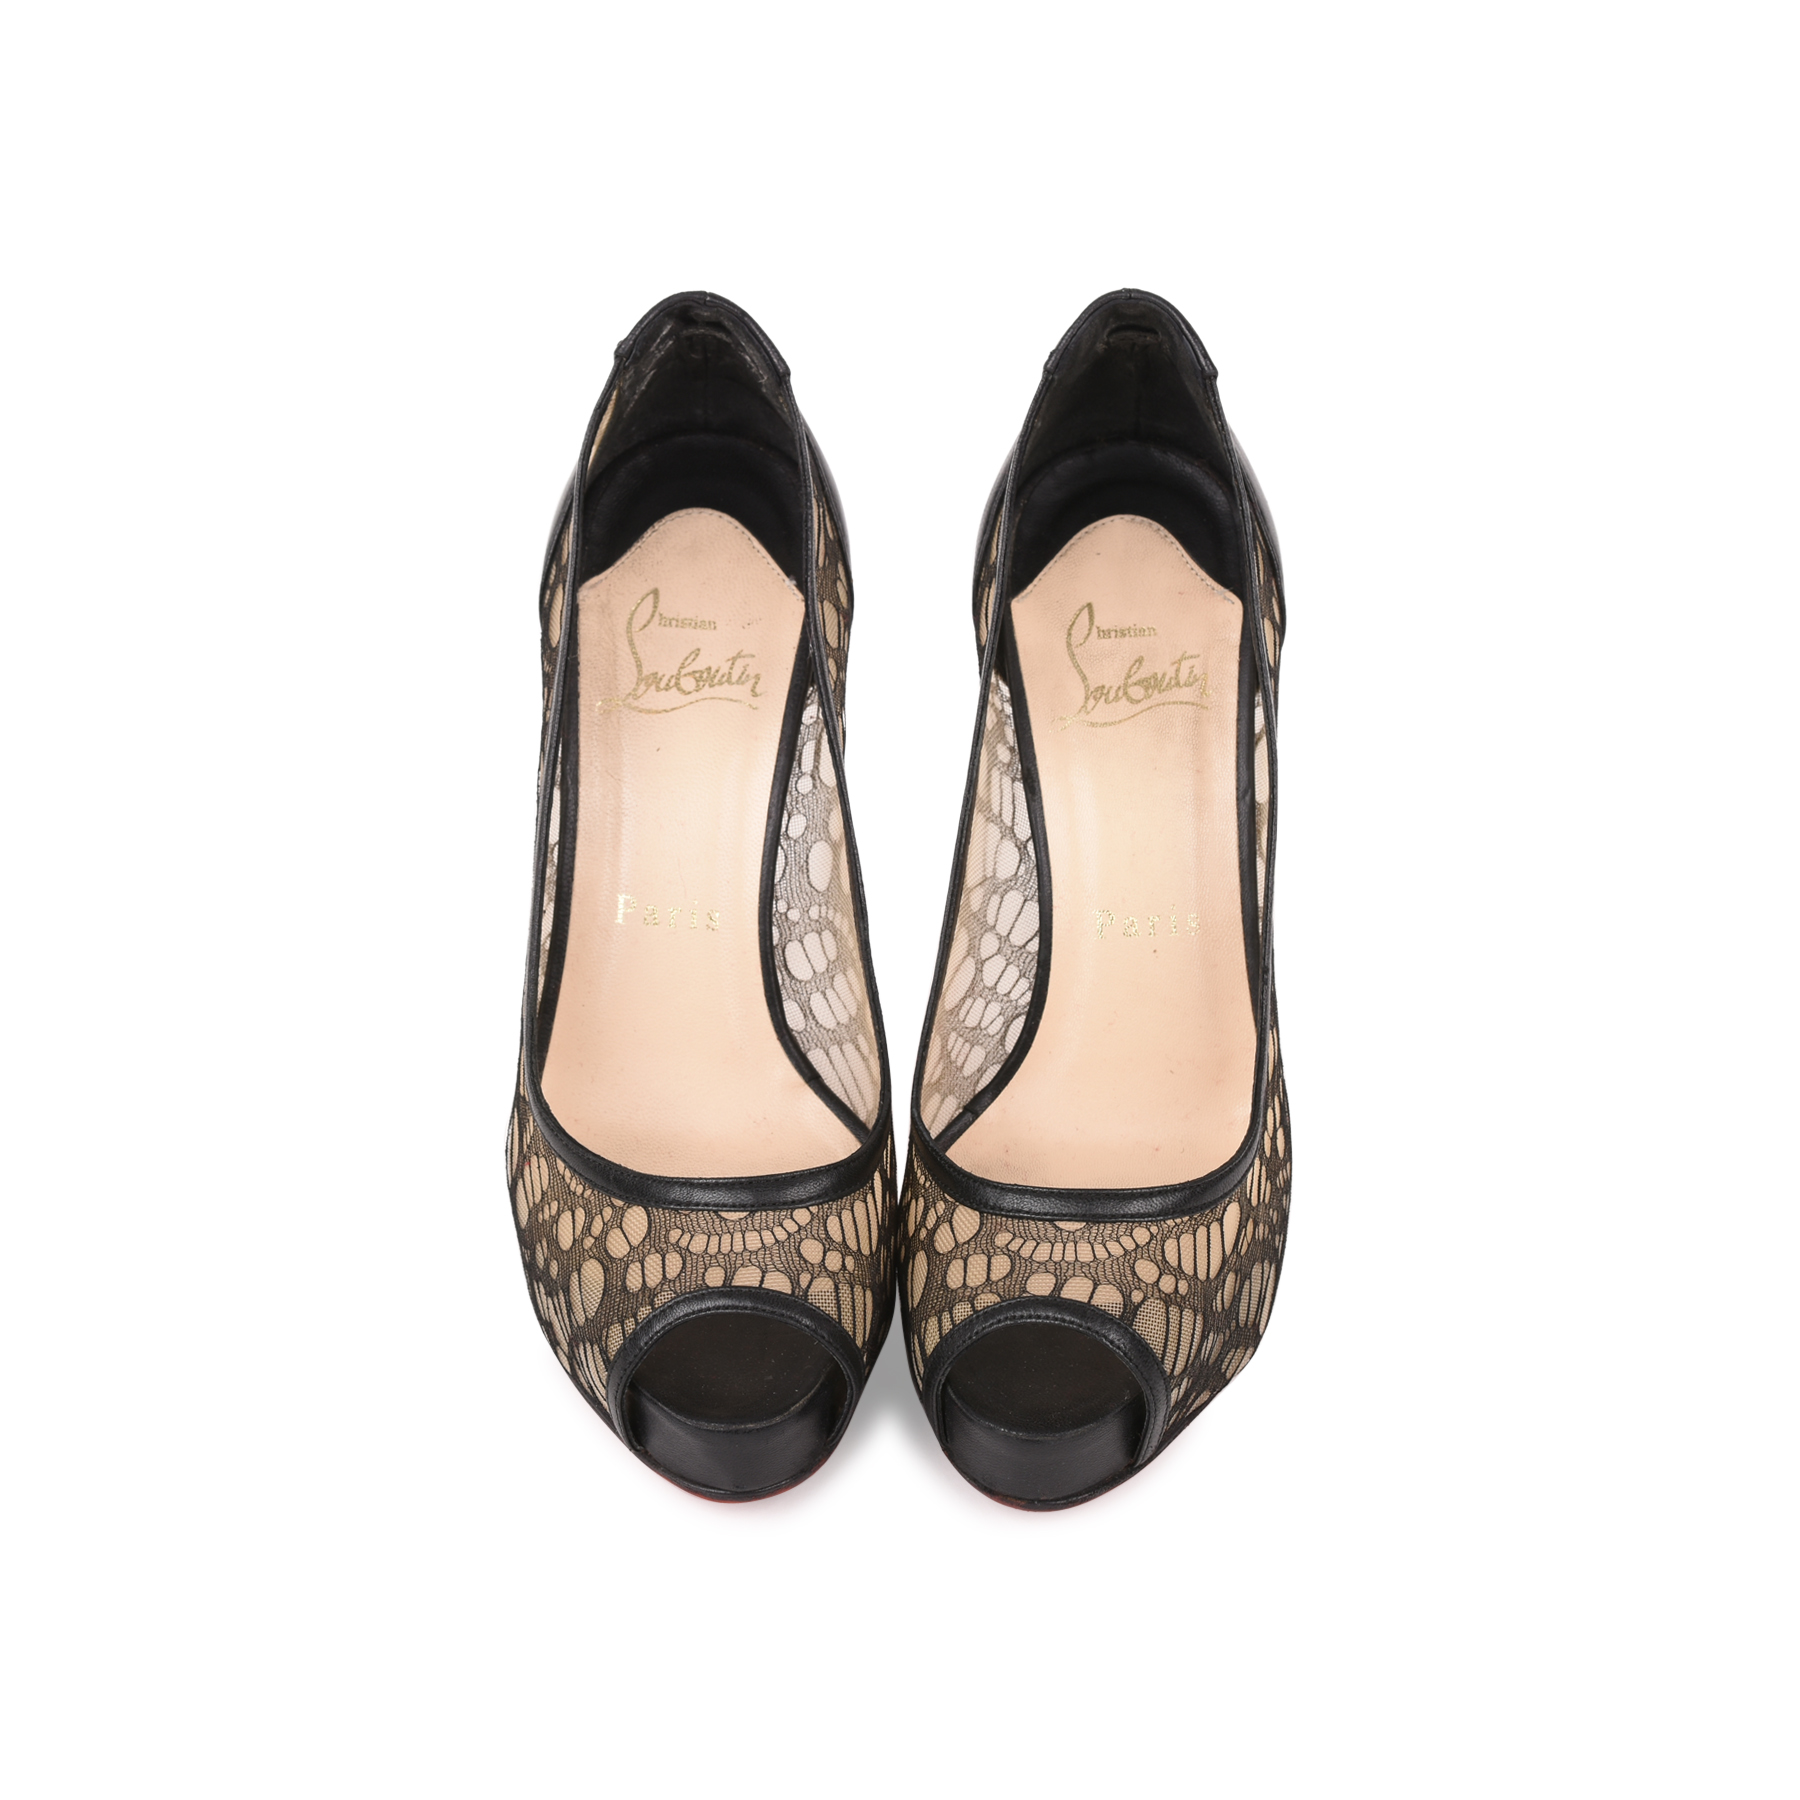 competitive price 786d8 22938 Very Lace Peep Toe Pumps